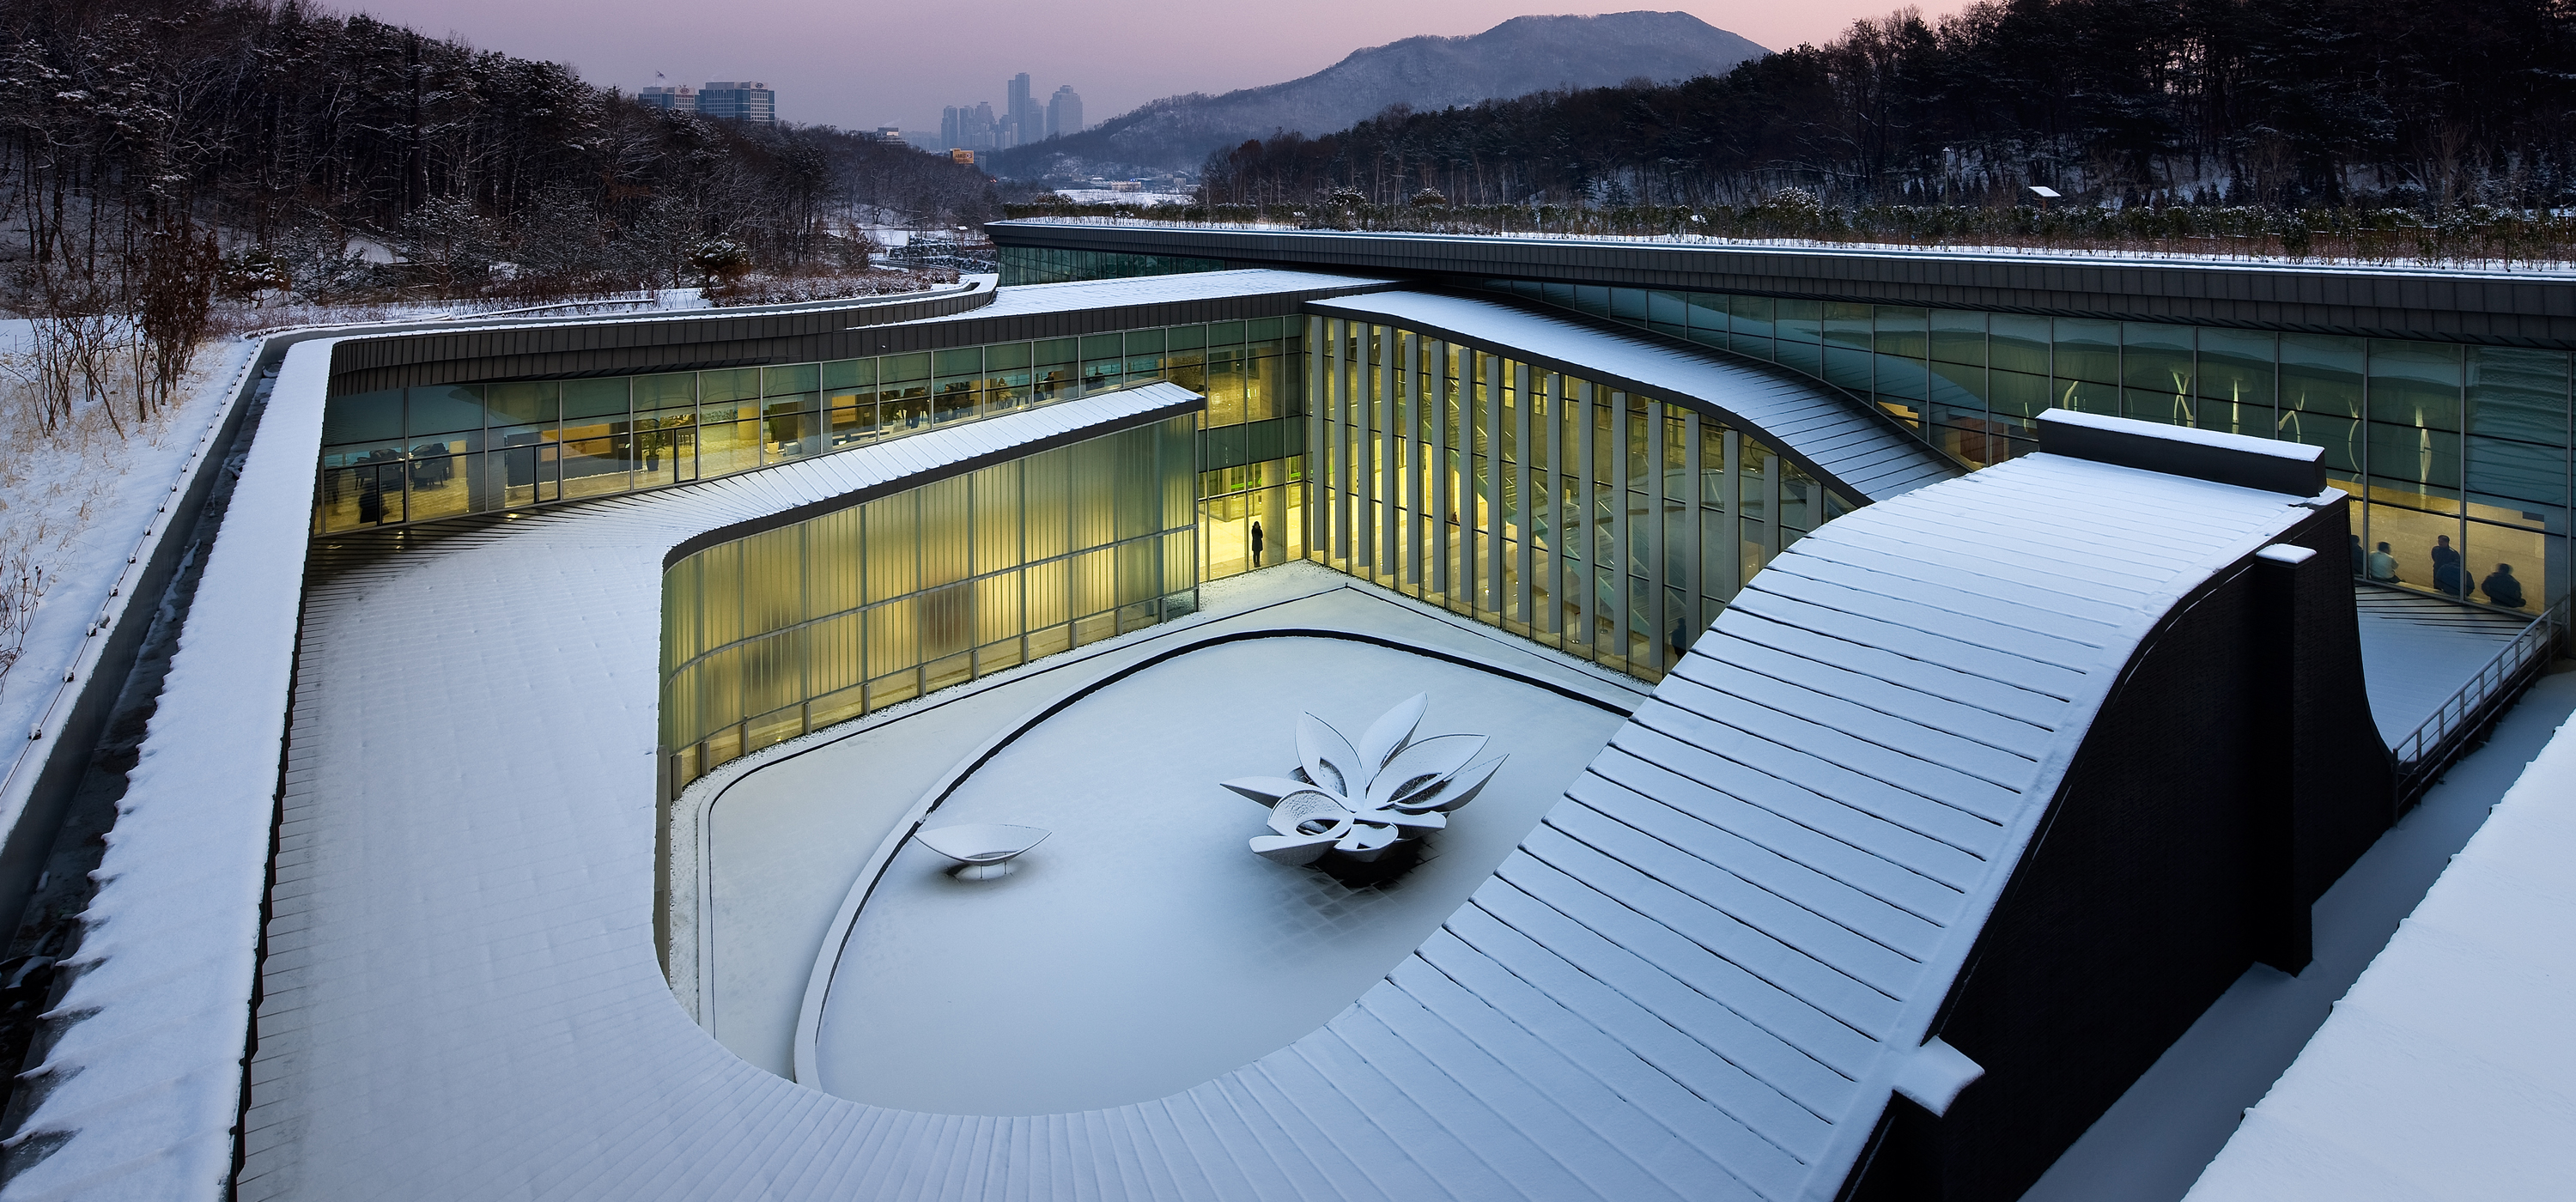 Seoul Memorial Park Crematorium covered in snow, Seoul, South Korea [OS] [3000×1400]